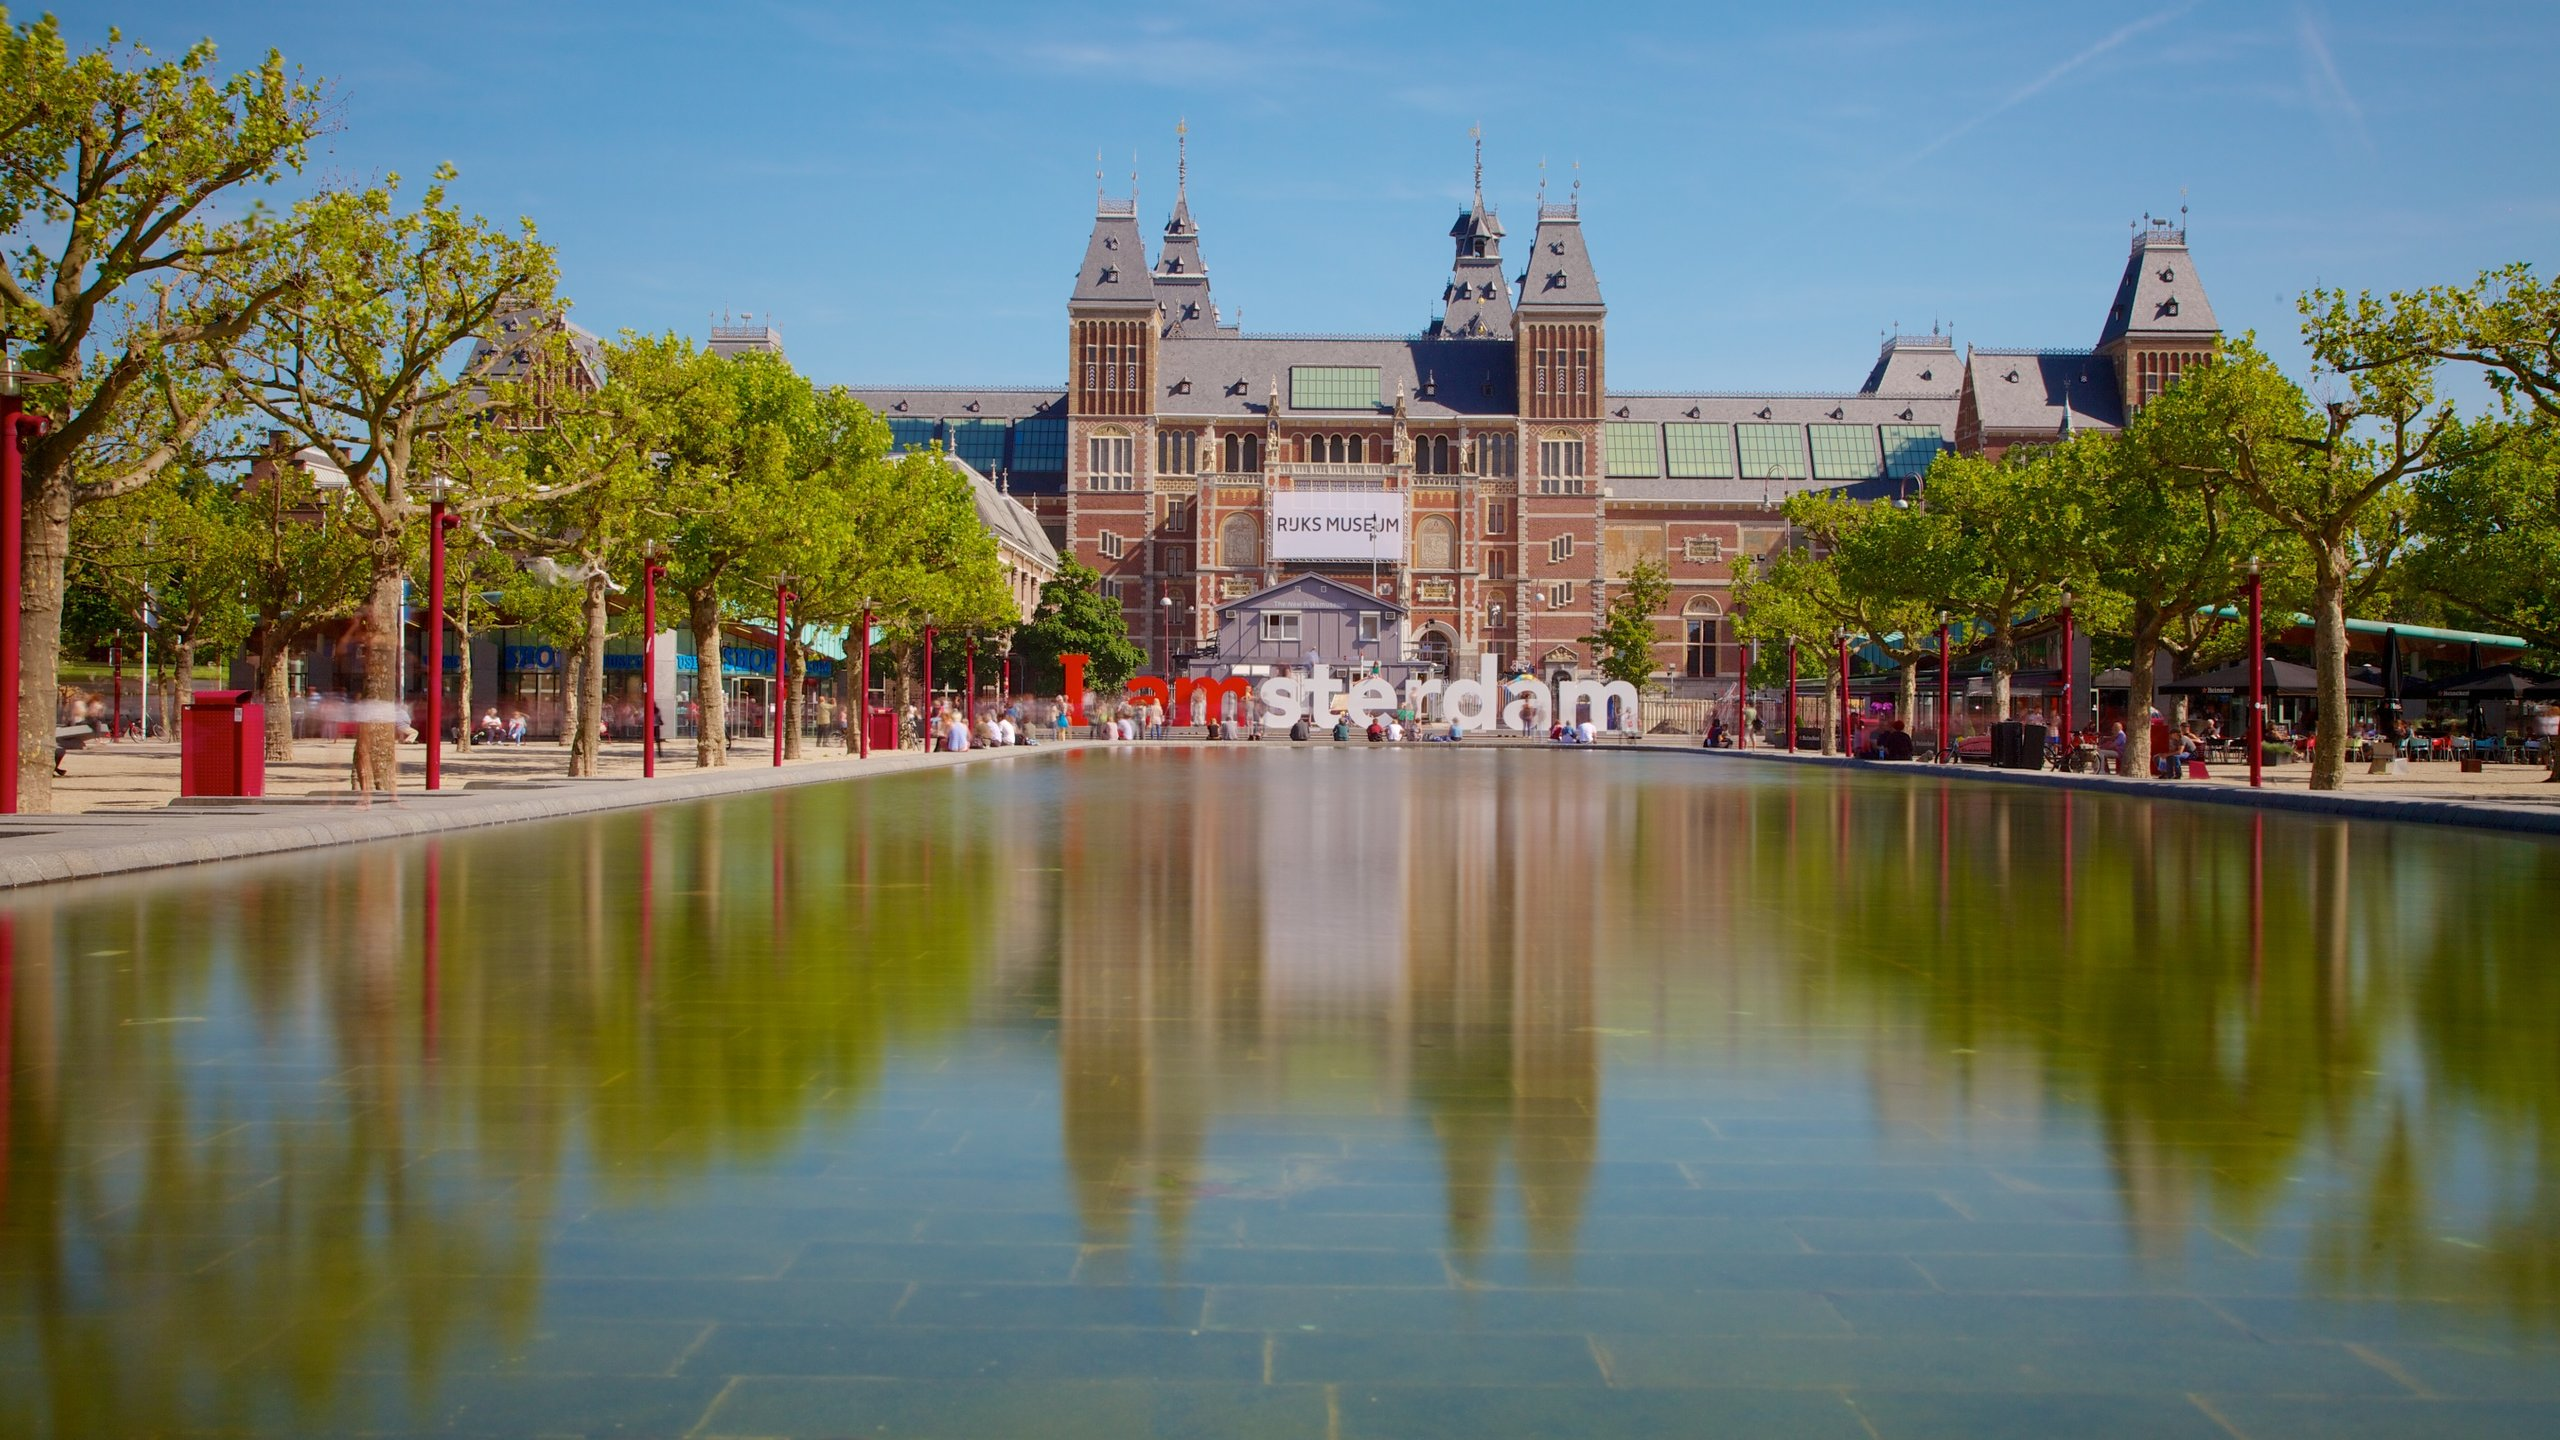 Explore The Netherlands' largest publicly-funded museum, full of world-famous masterpieces.